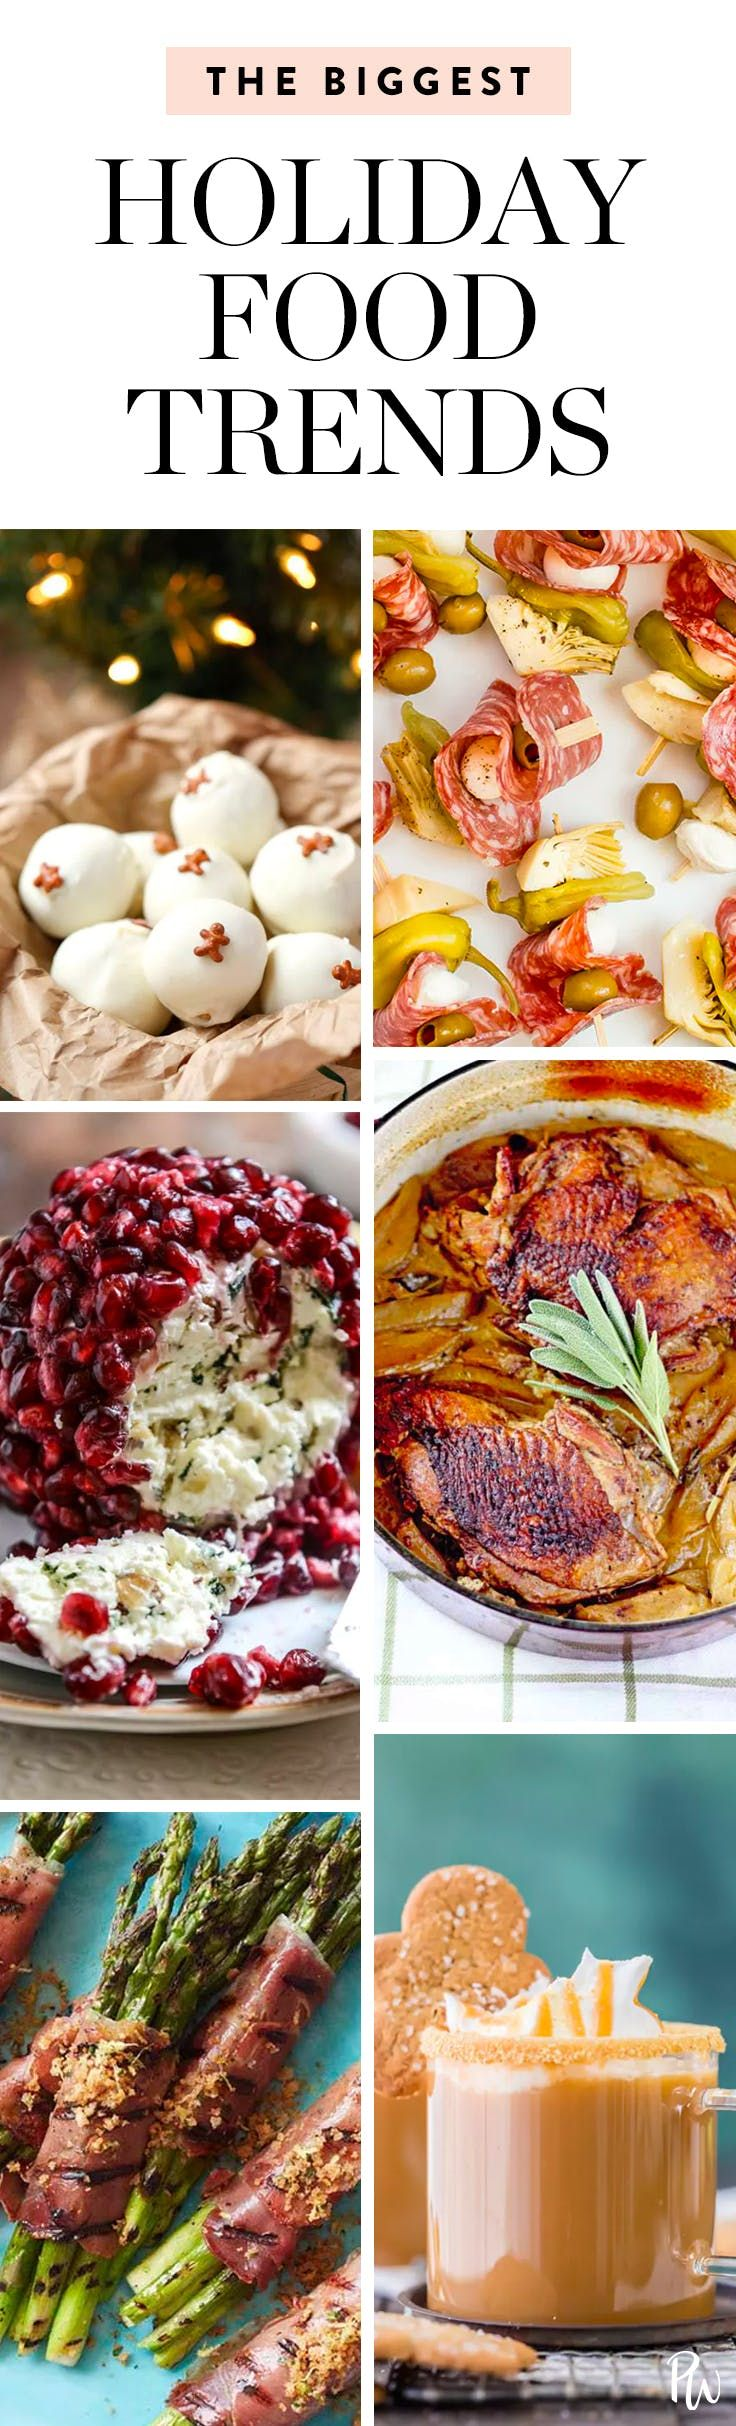 Psst: These Are the Biggest Holiday Food Trends of 2017  via @PureWow